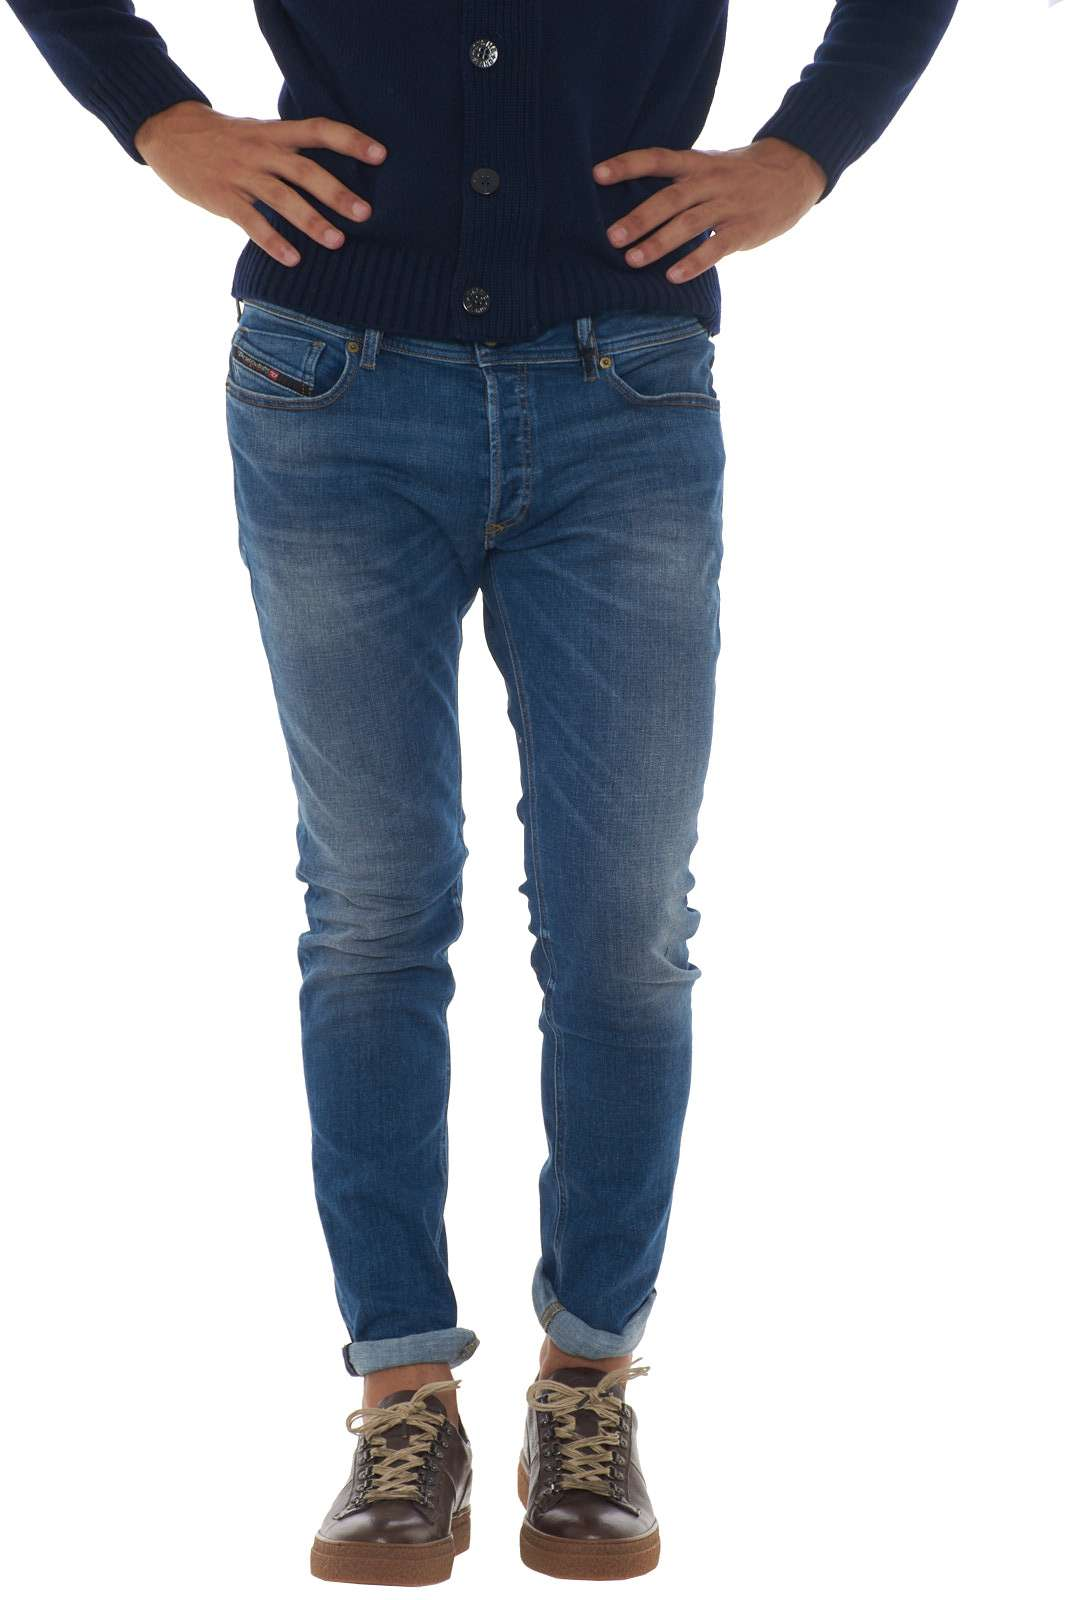 https://www.parmax.com/media/catalog/product/a/i/AI-outlet_parmax-denim-uomo-Diesel-00SWJF%20082AB-A.jpg